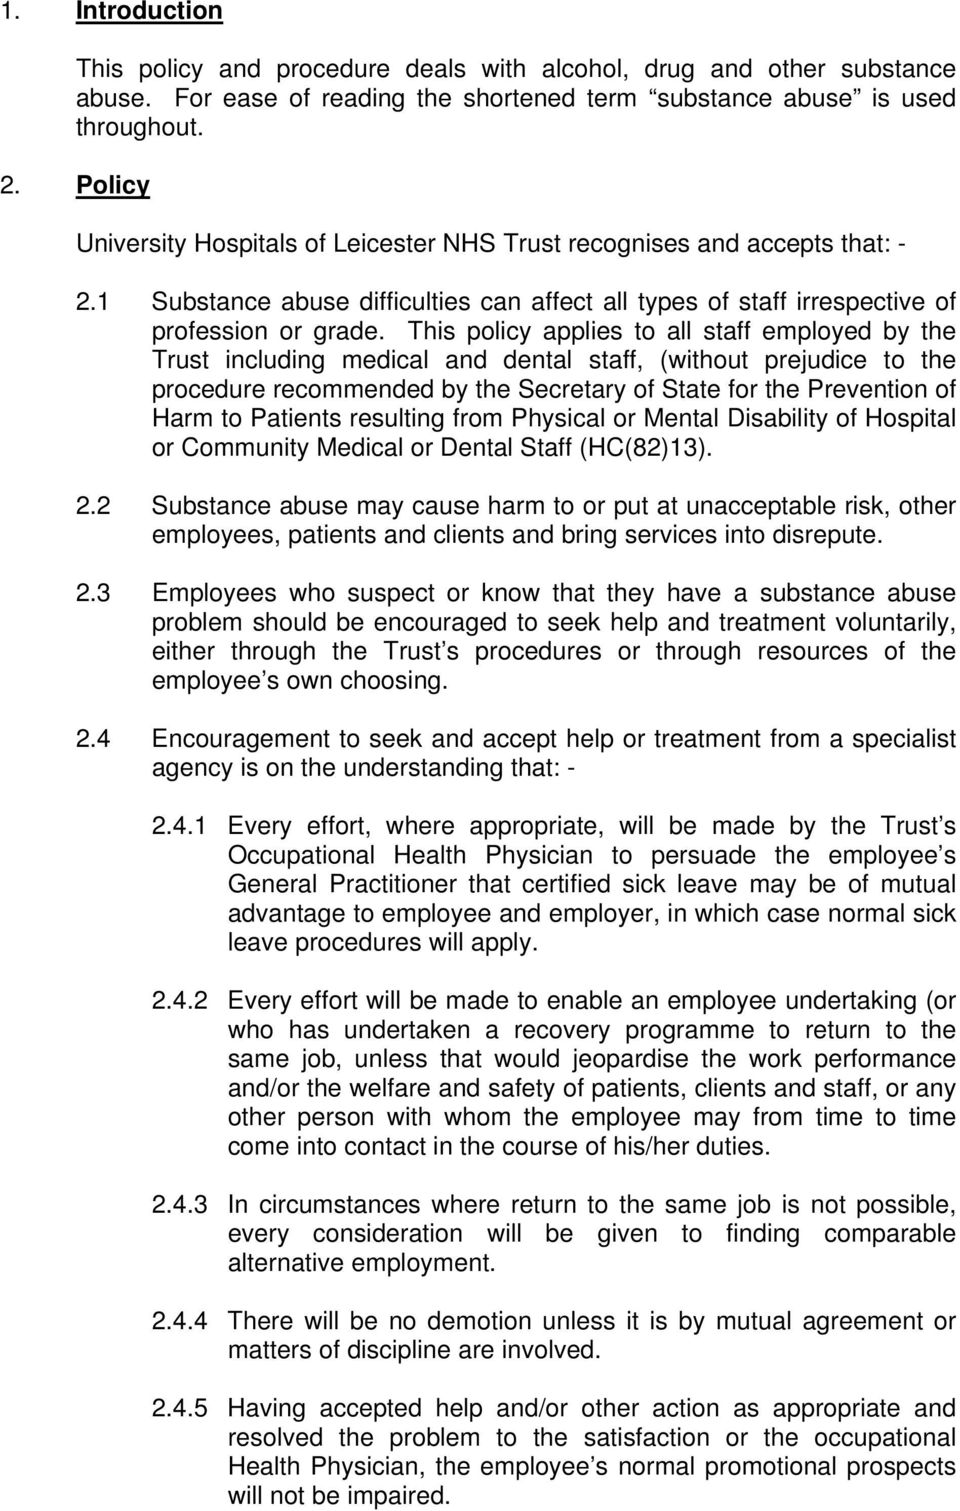 This policy applies to all staff employed by the Trust including medical and dental staff, (without prejudice to the procedure recommended by the Secretary of State for the Prevention of Harm to